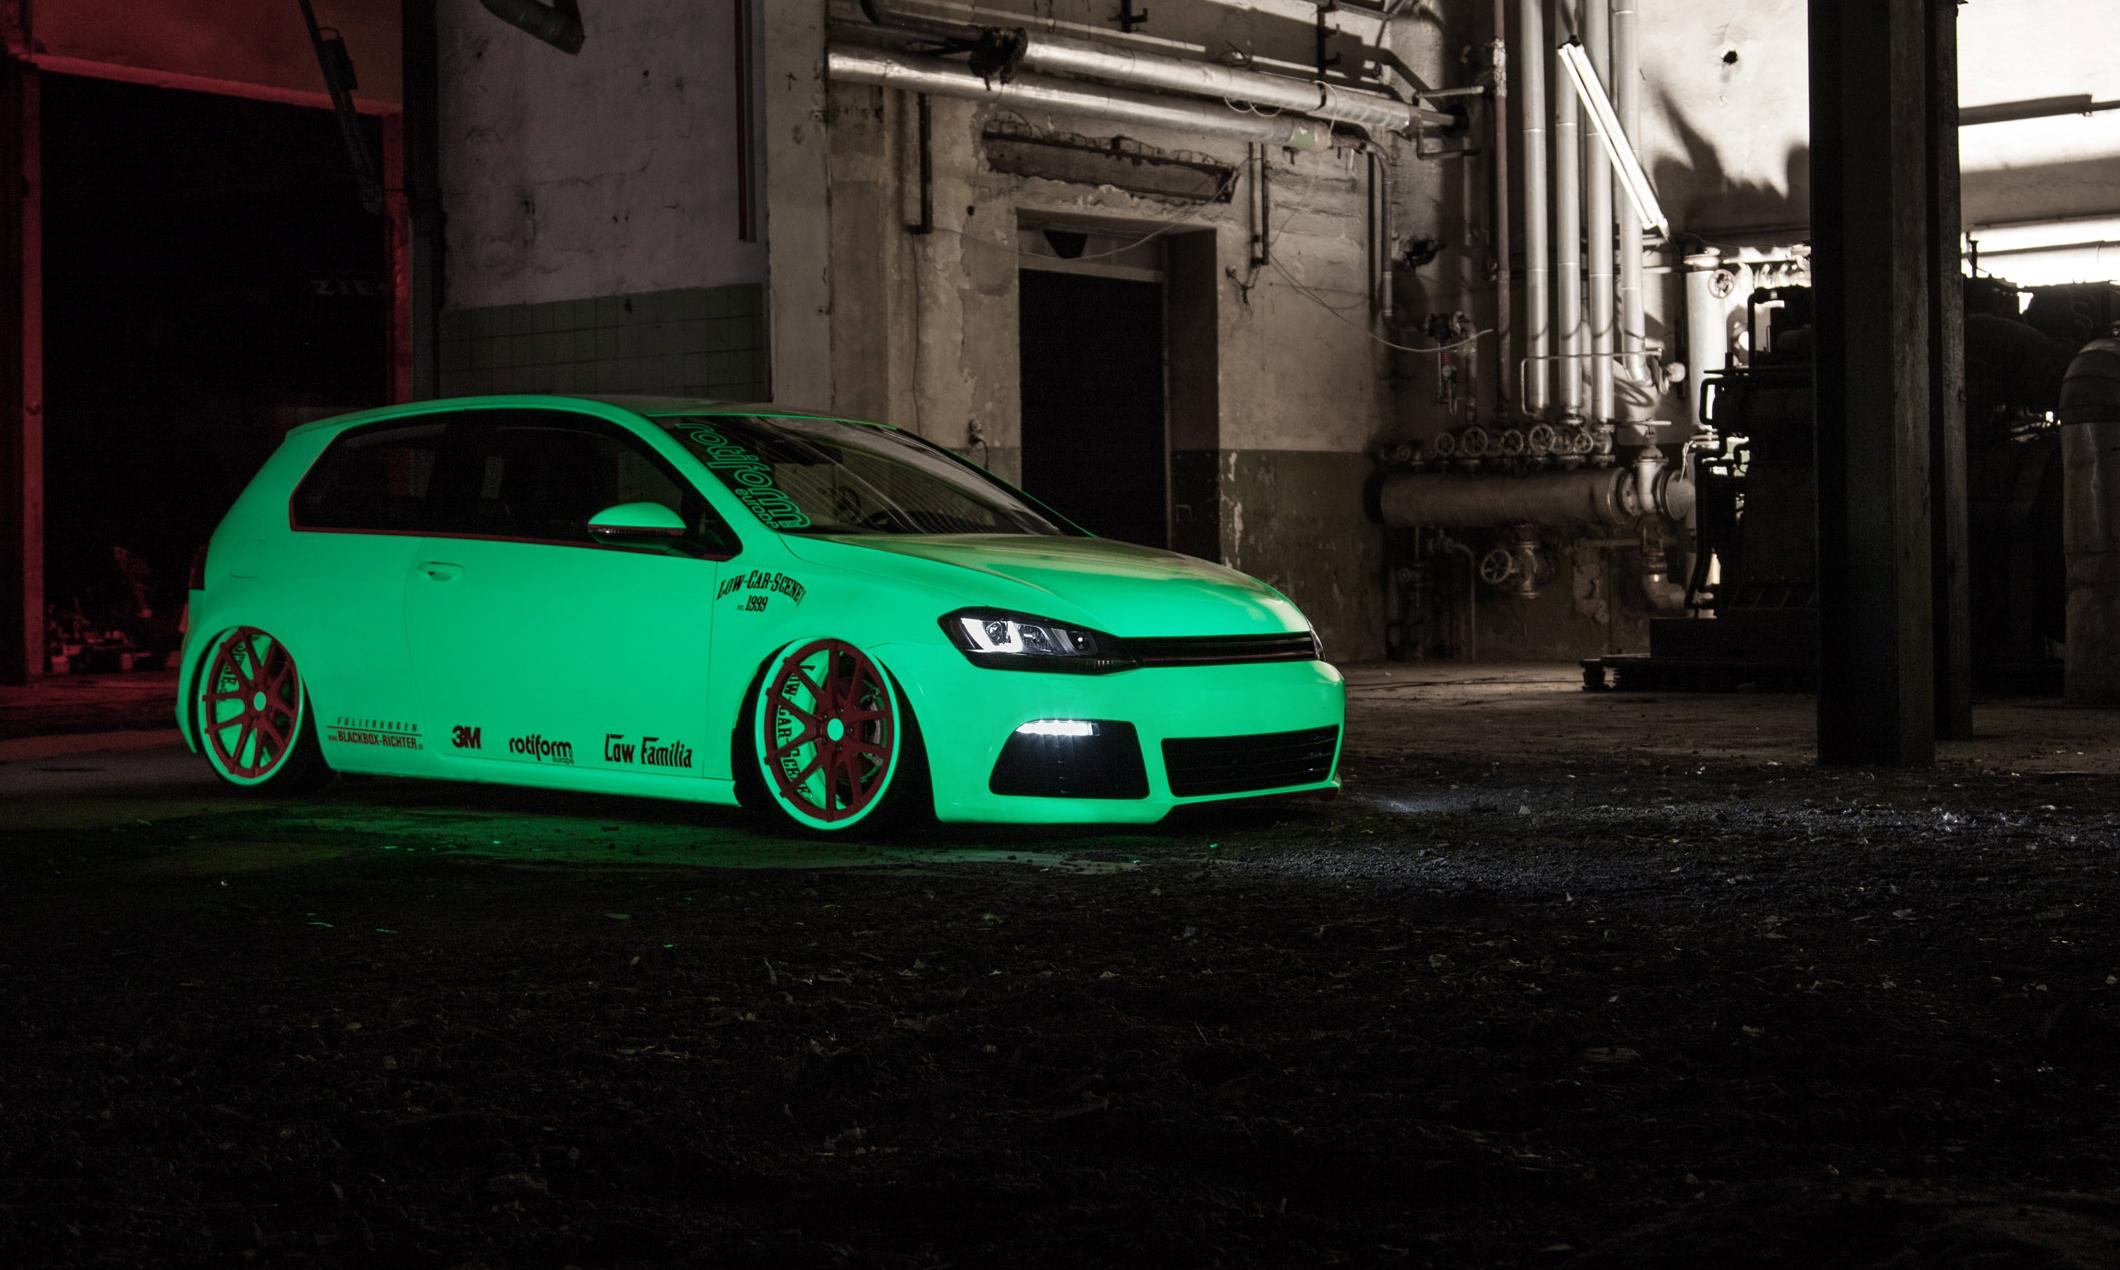 vw-golf-mk7-light-tron-neon-green